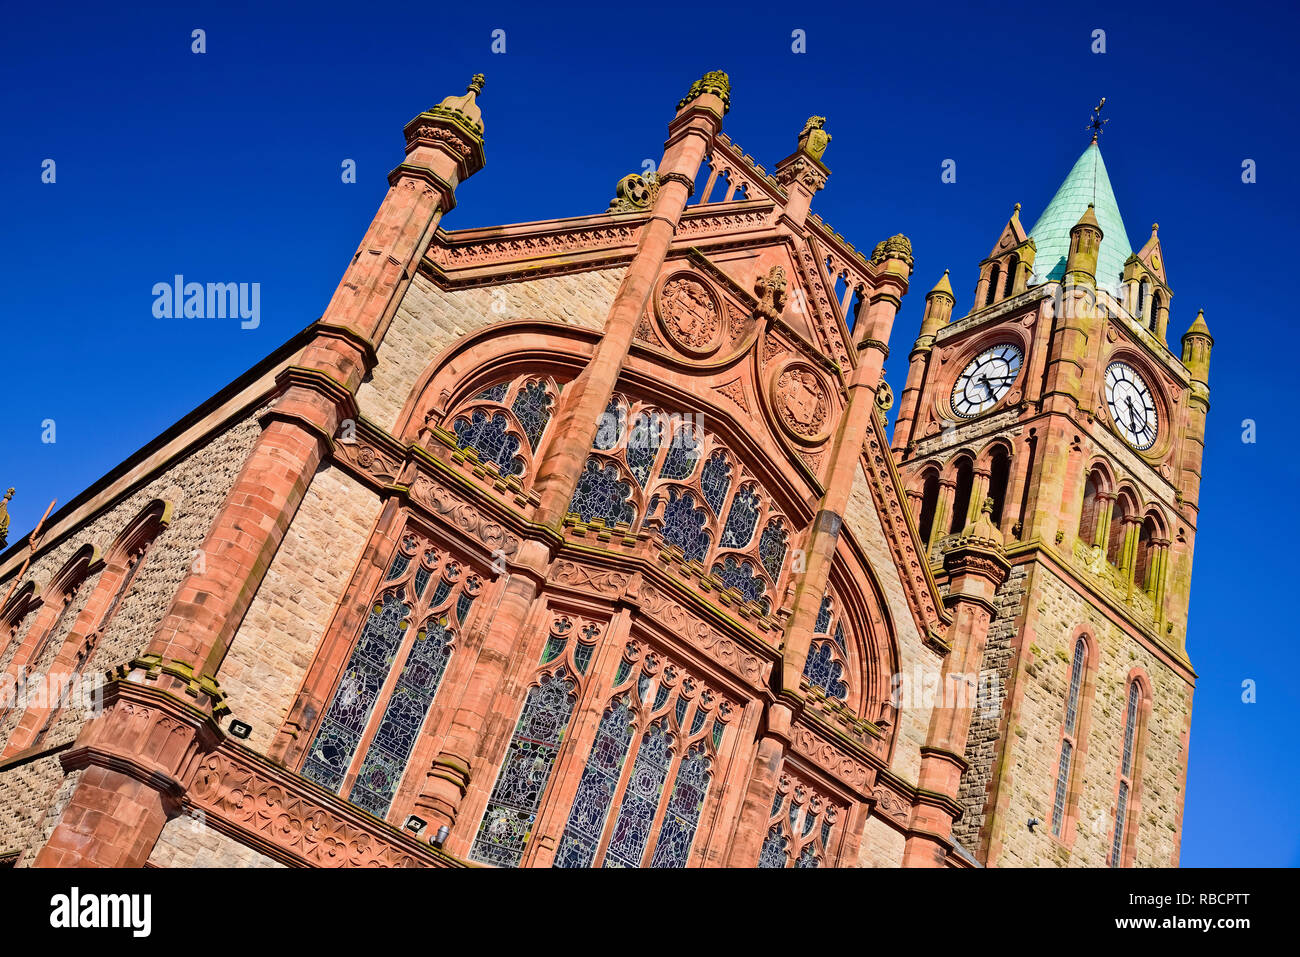 Northern Ireland, County Derry, The Guild Hall, a section of its Neo Gothic facade and the clock Tower. - Stock Image